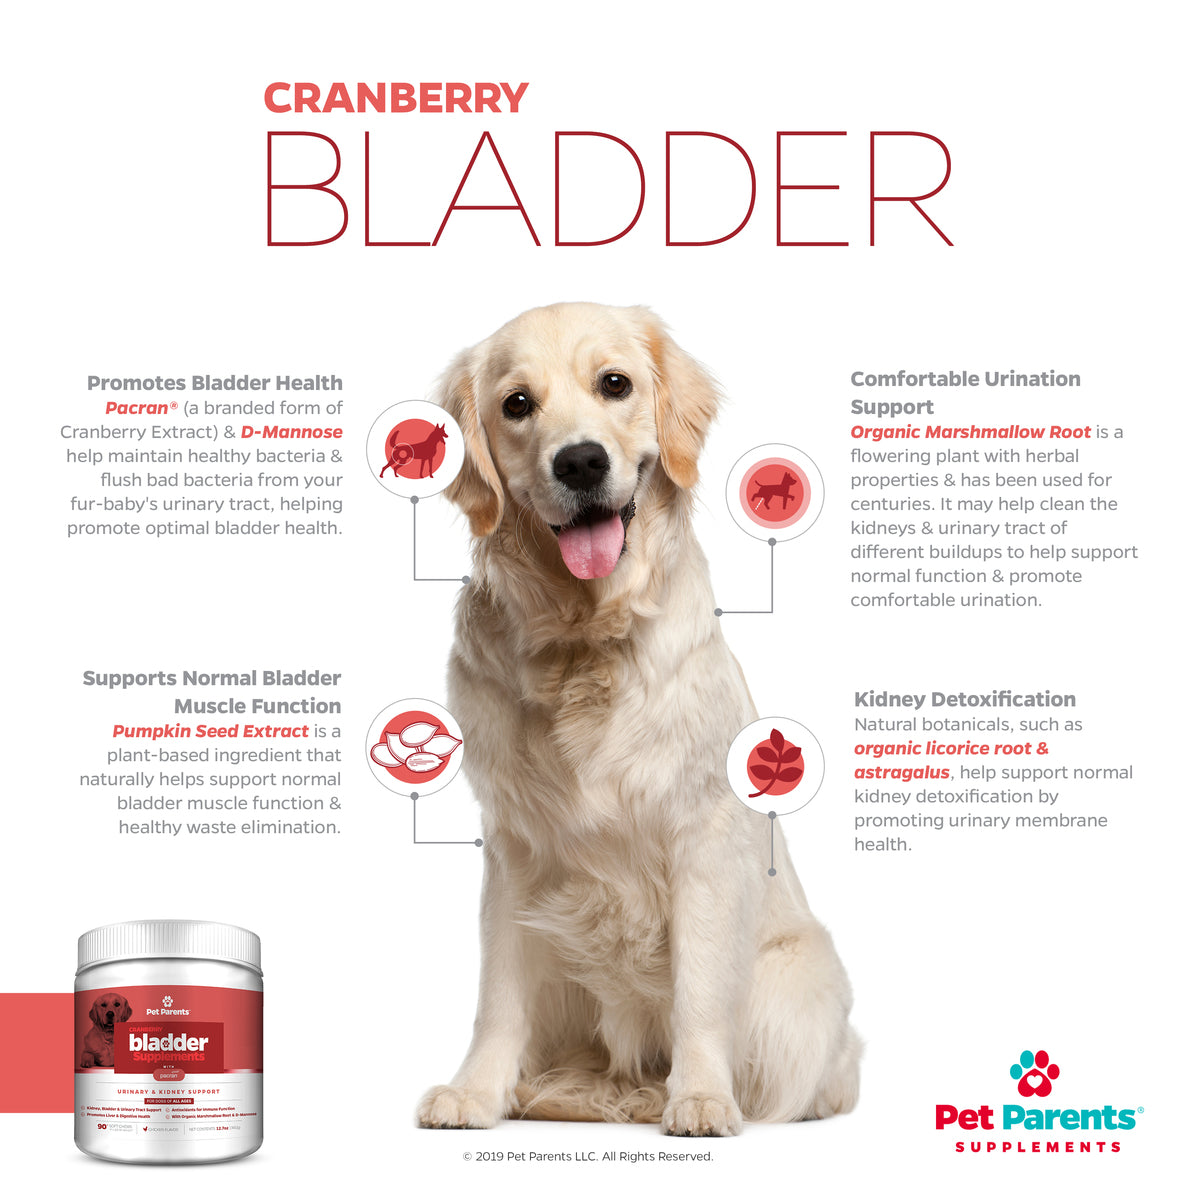 USA UTI In Dogs Supplement | Dog UTI Treatment Treats | Bladder Infection In Dogs & Bladder Stones Help with Pacran® | 4g 90Count Soft Chews